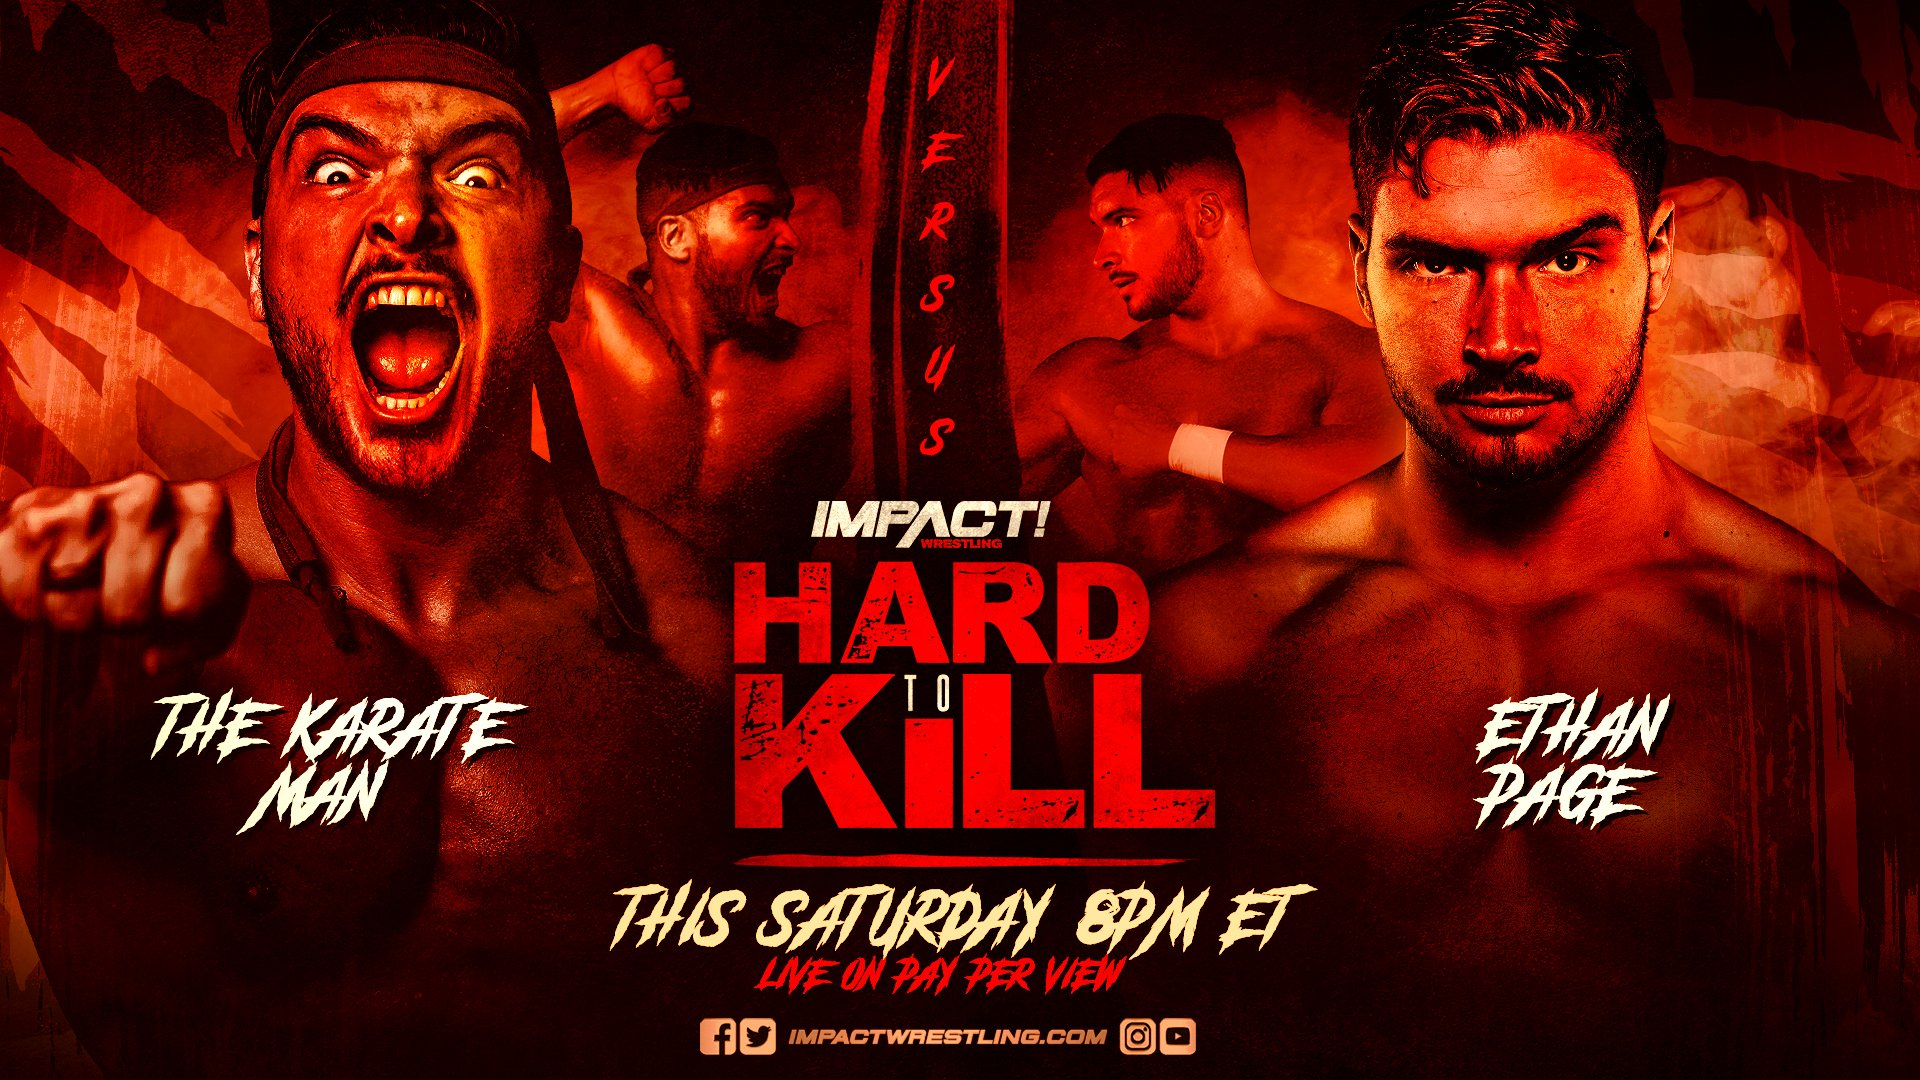 Watch Impact Wrestling: Hard To Kill 2021 1/16/21